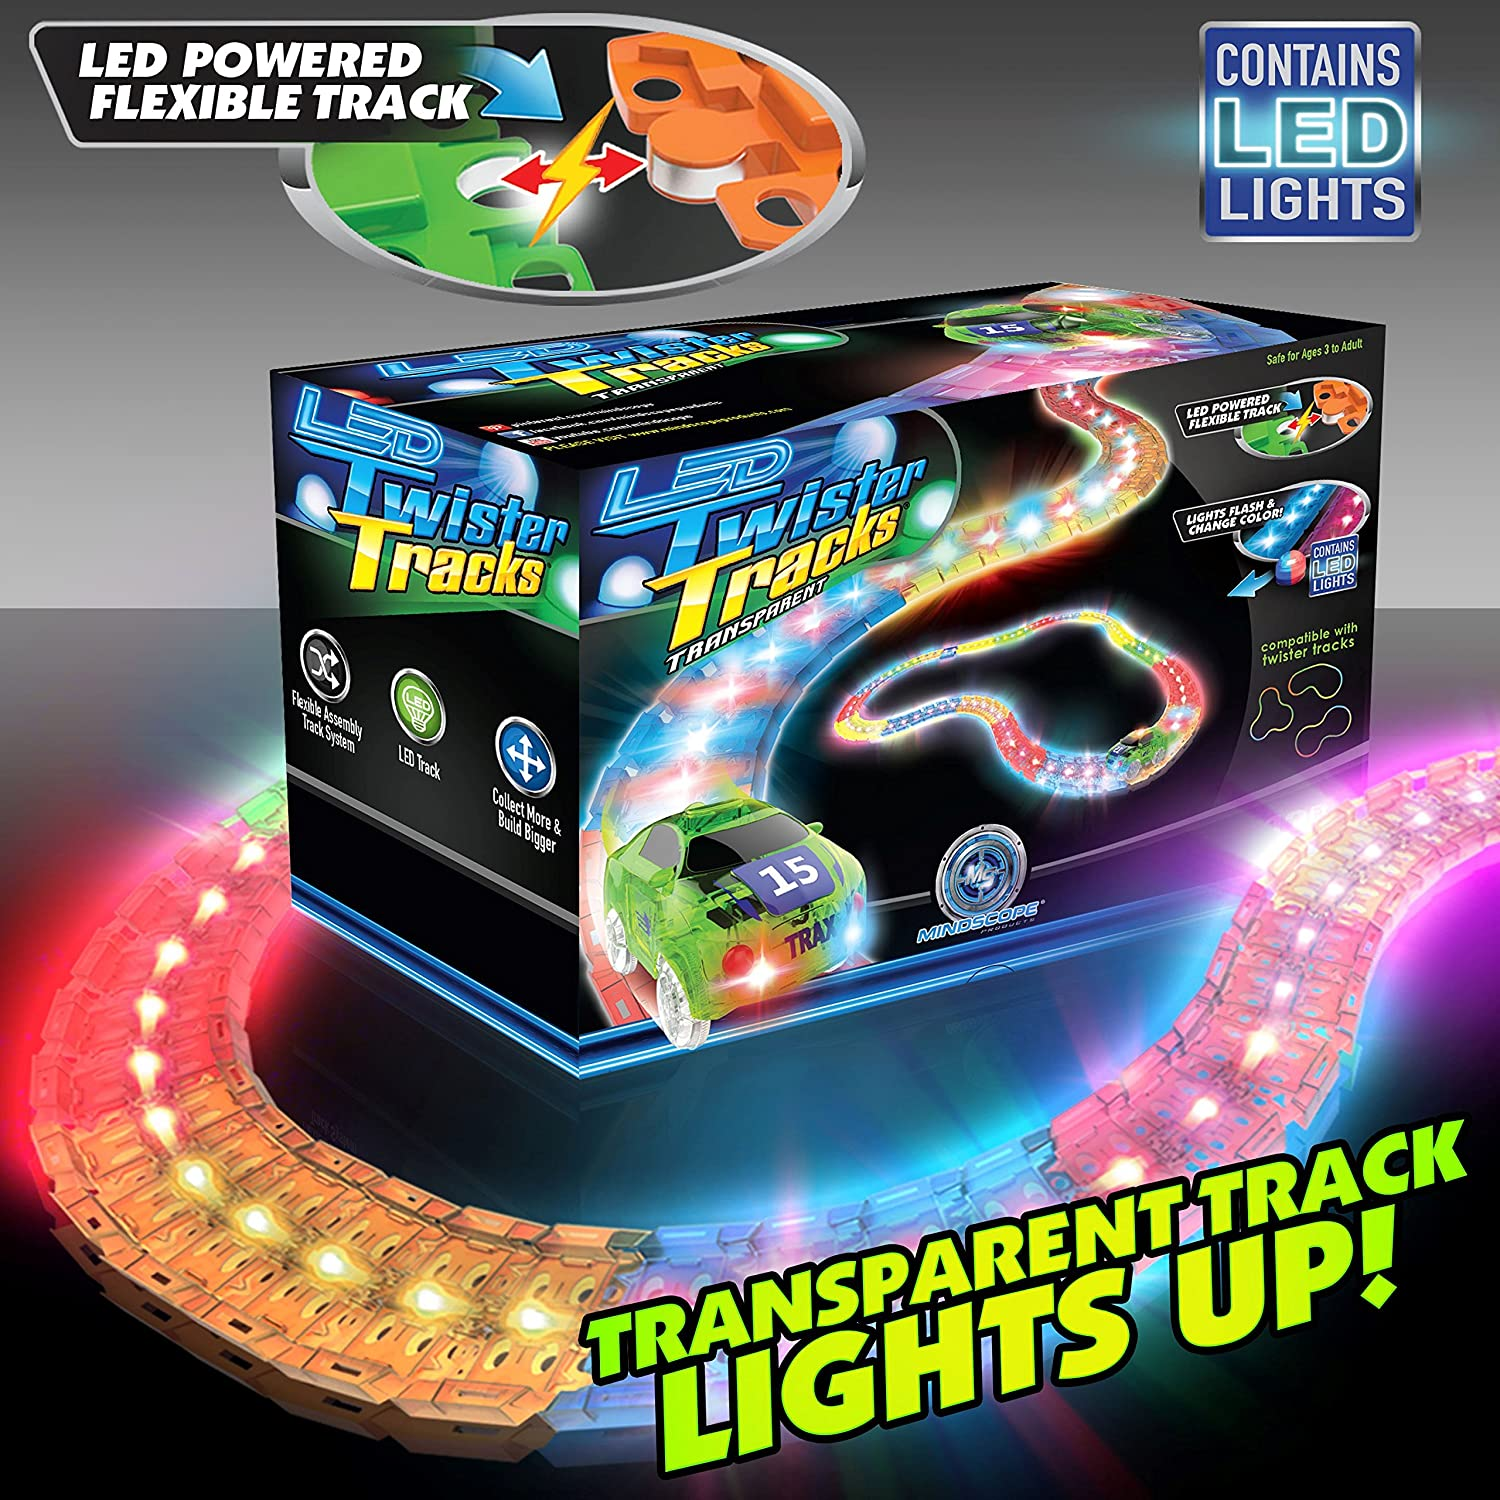 Amazon.com Mindscope LED Laser Twister Tracks 12 Feet of Light Up Flexible Track + 1 Light Up Race Car Each Inidual Track Piece Contains Lights ...  sc 1 st  Amazon.com : lights tracks - azcodes.com